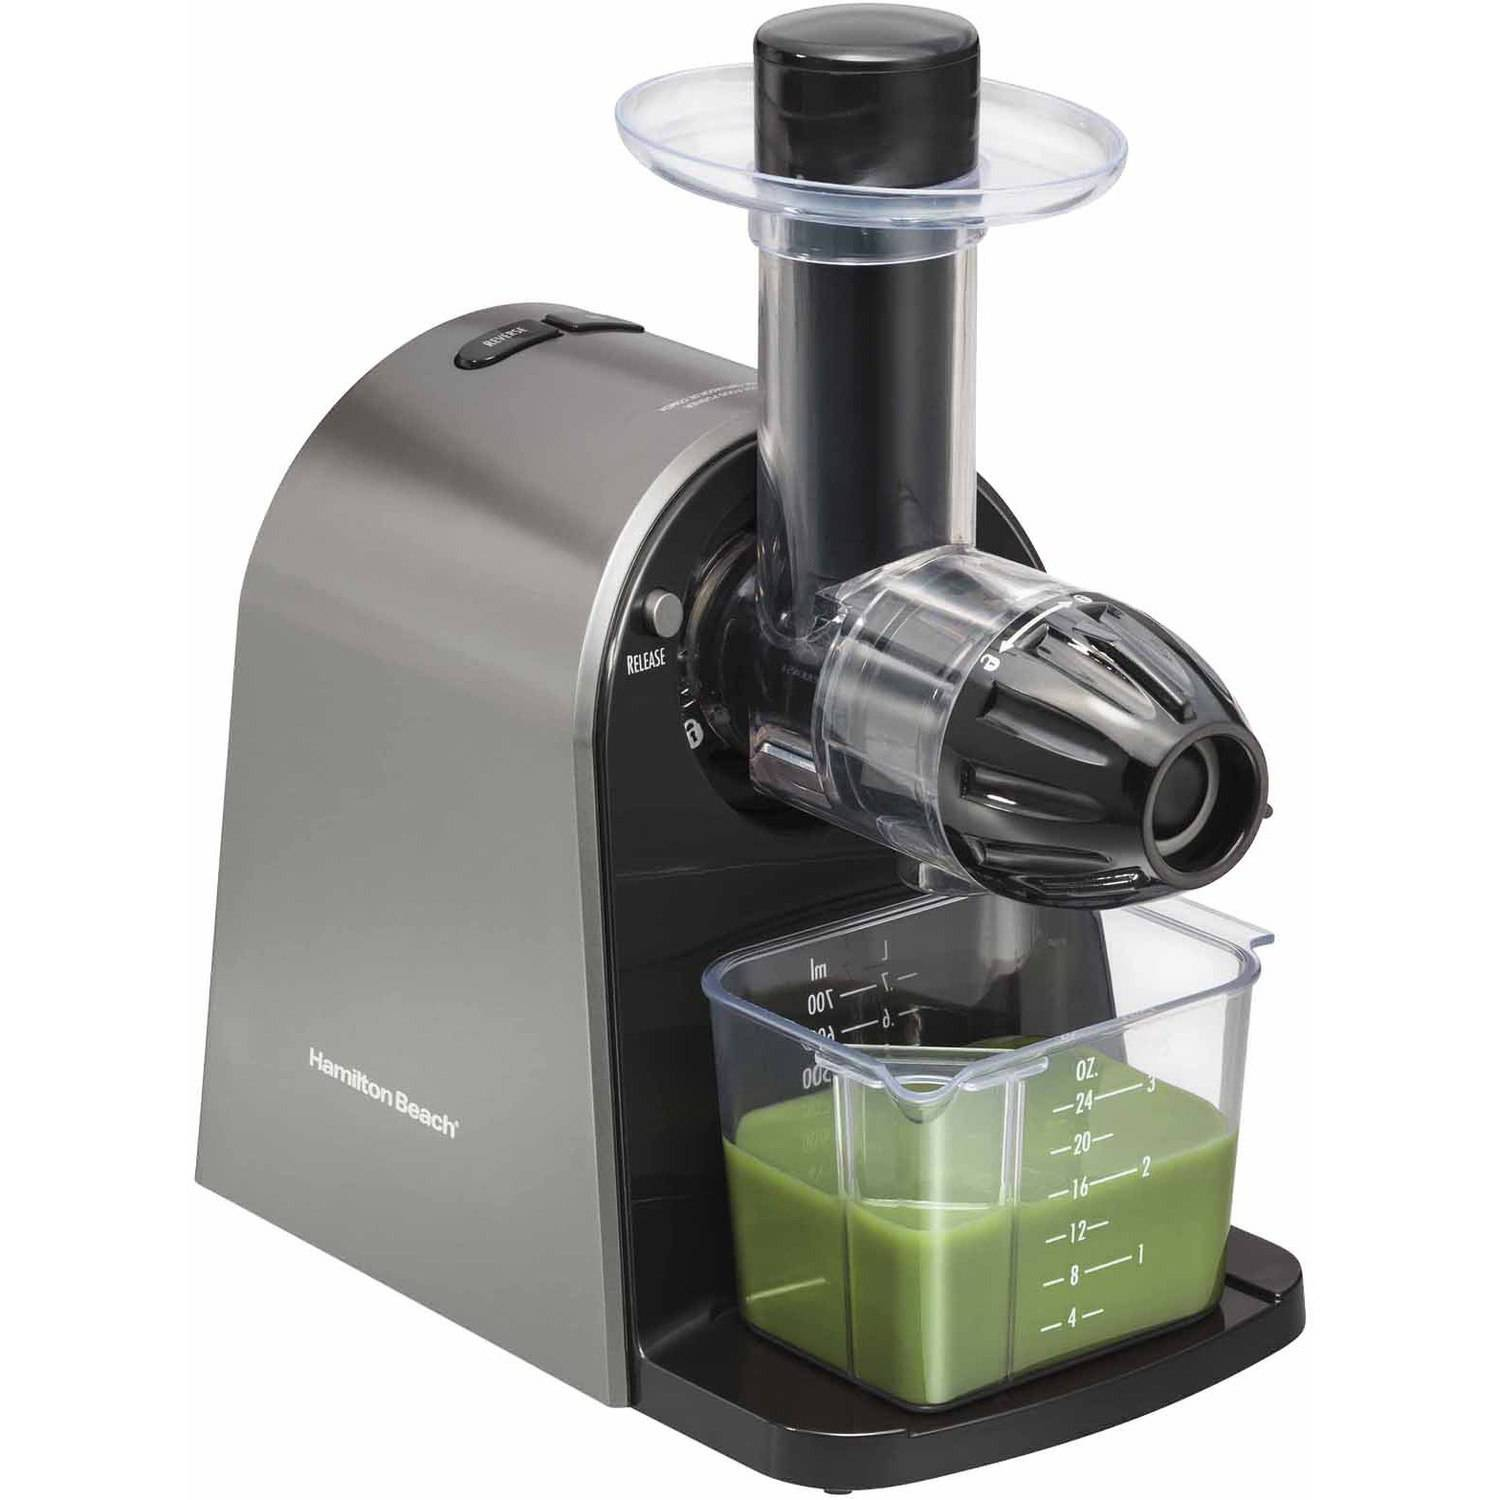 Sunmile Slow Juicer Review : Cold Press Juicer Machine - Masticating Juicer Slow Juice Extractor Maker Electric Juicing ...